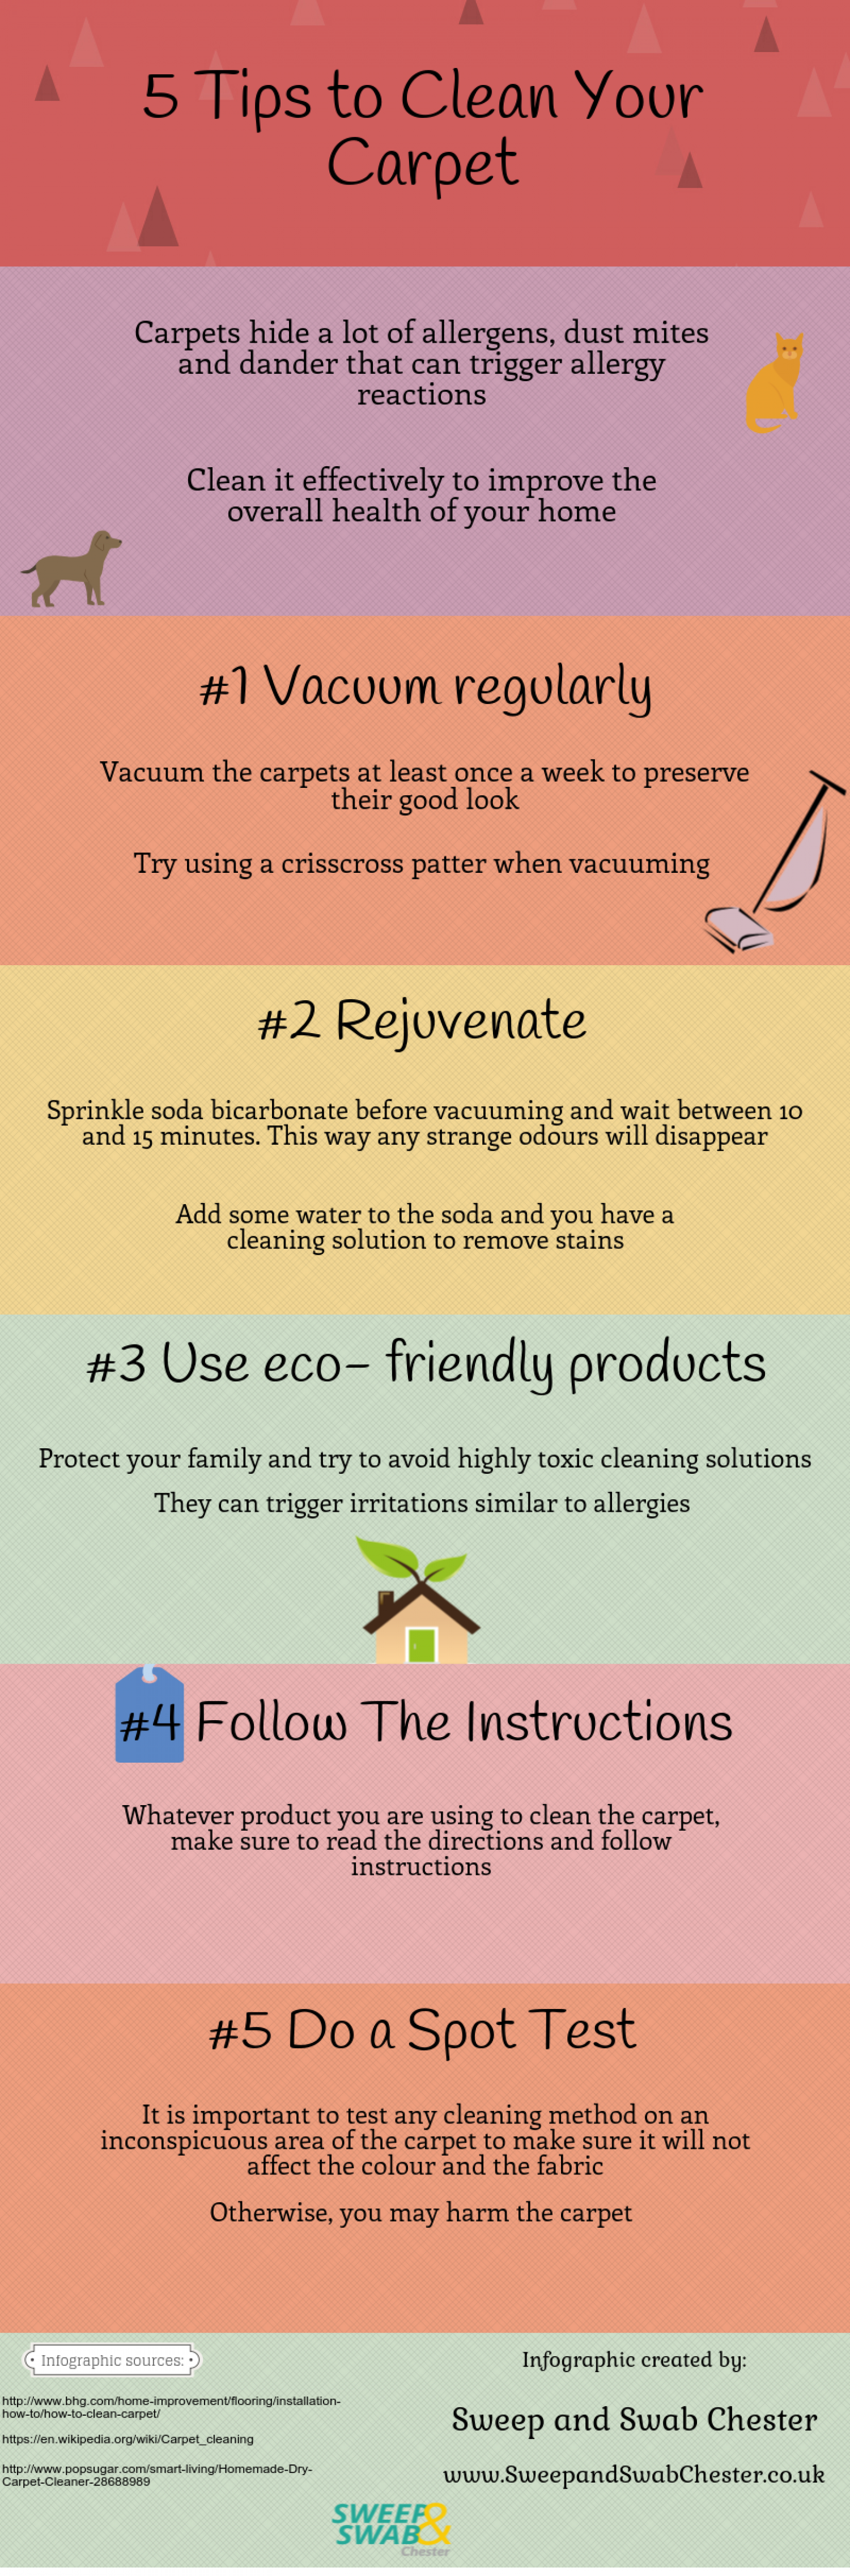 5 Tips to Clean Your Carpet Infographic